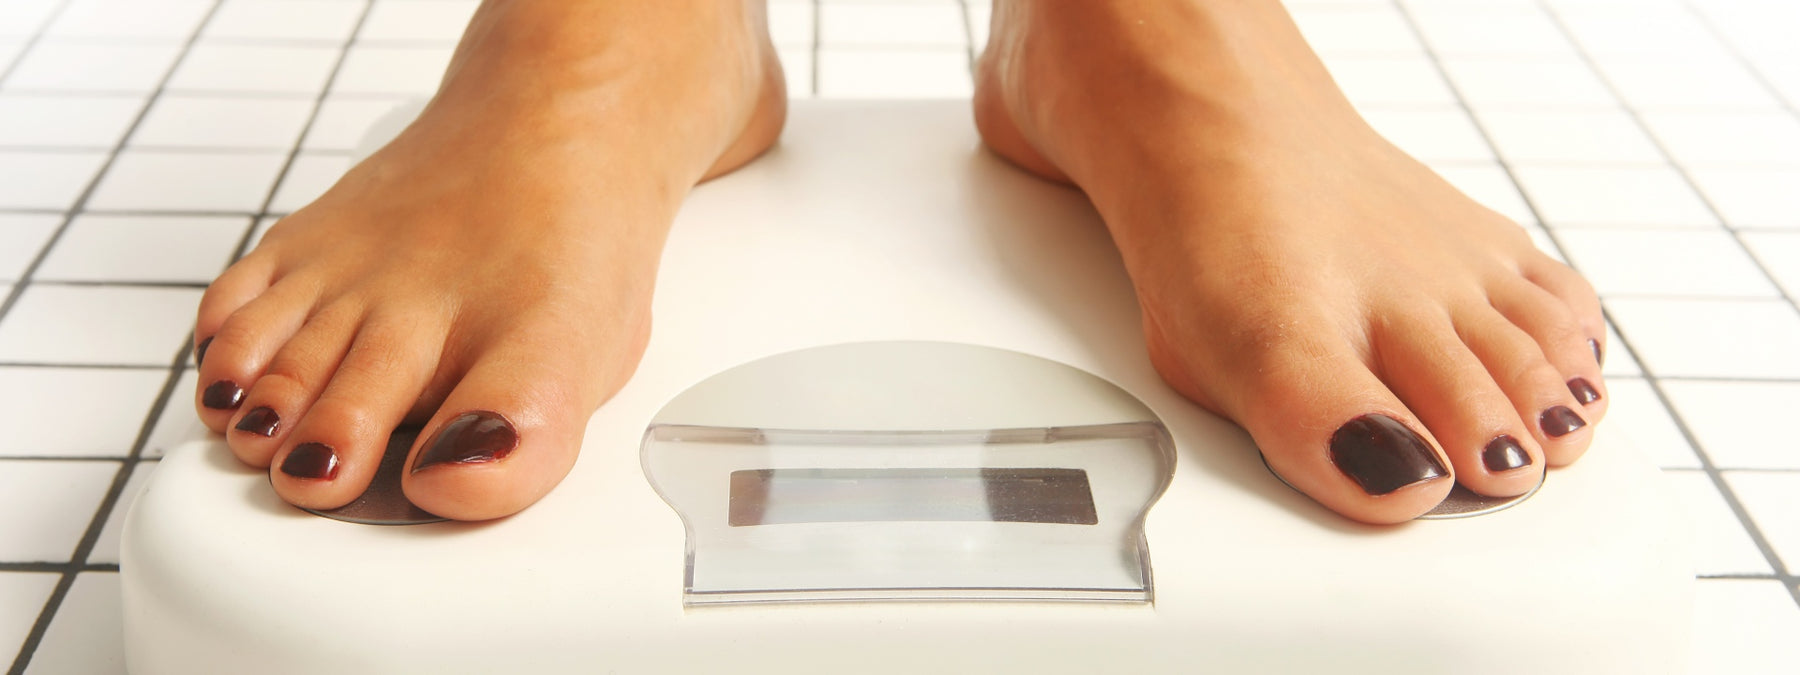 Throw Your Bathroom Scale Away! Why it May Be Your Worst Enemy